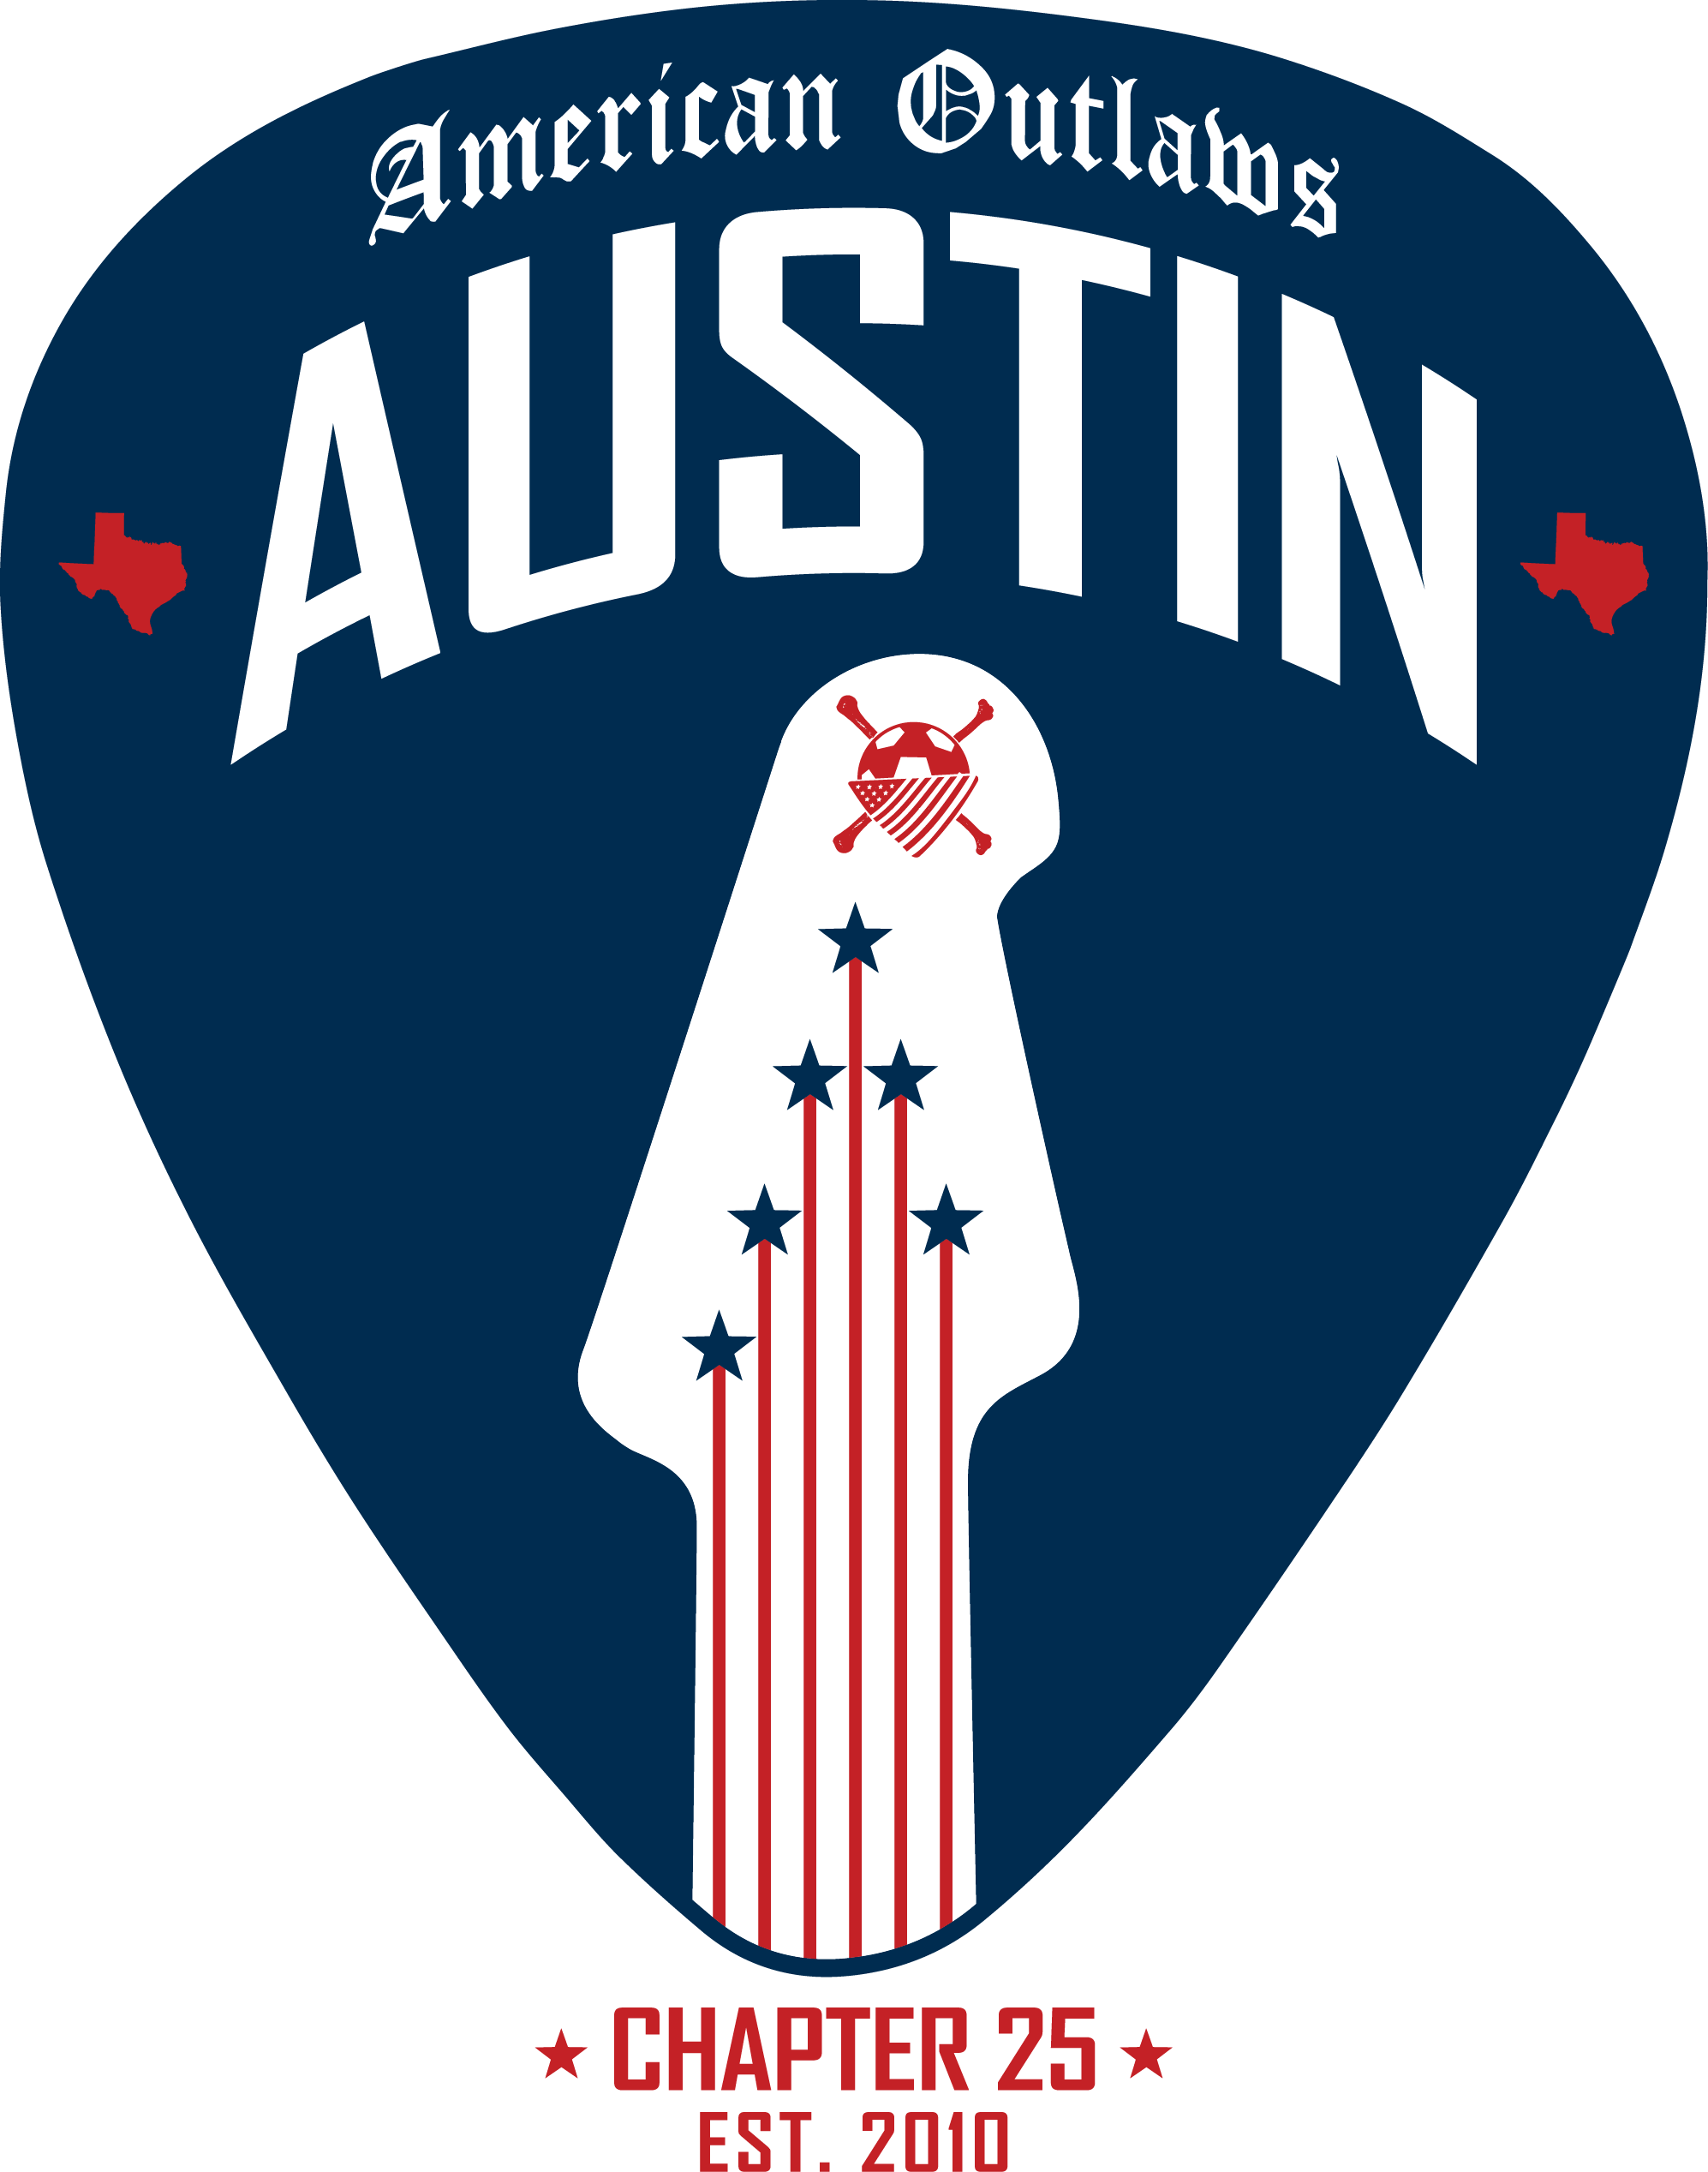 American Outlaws Austin Chapter